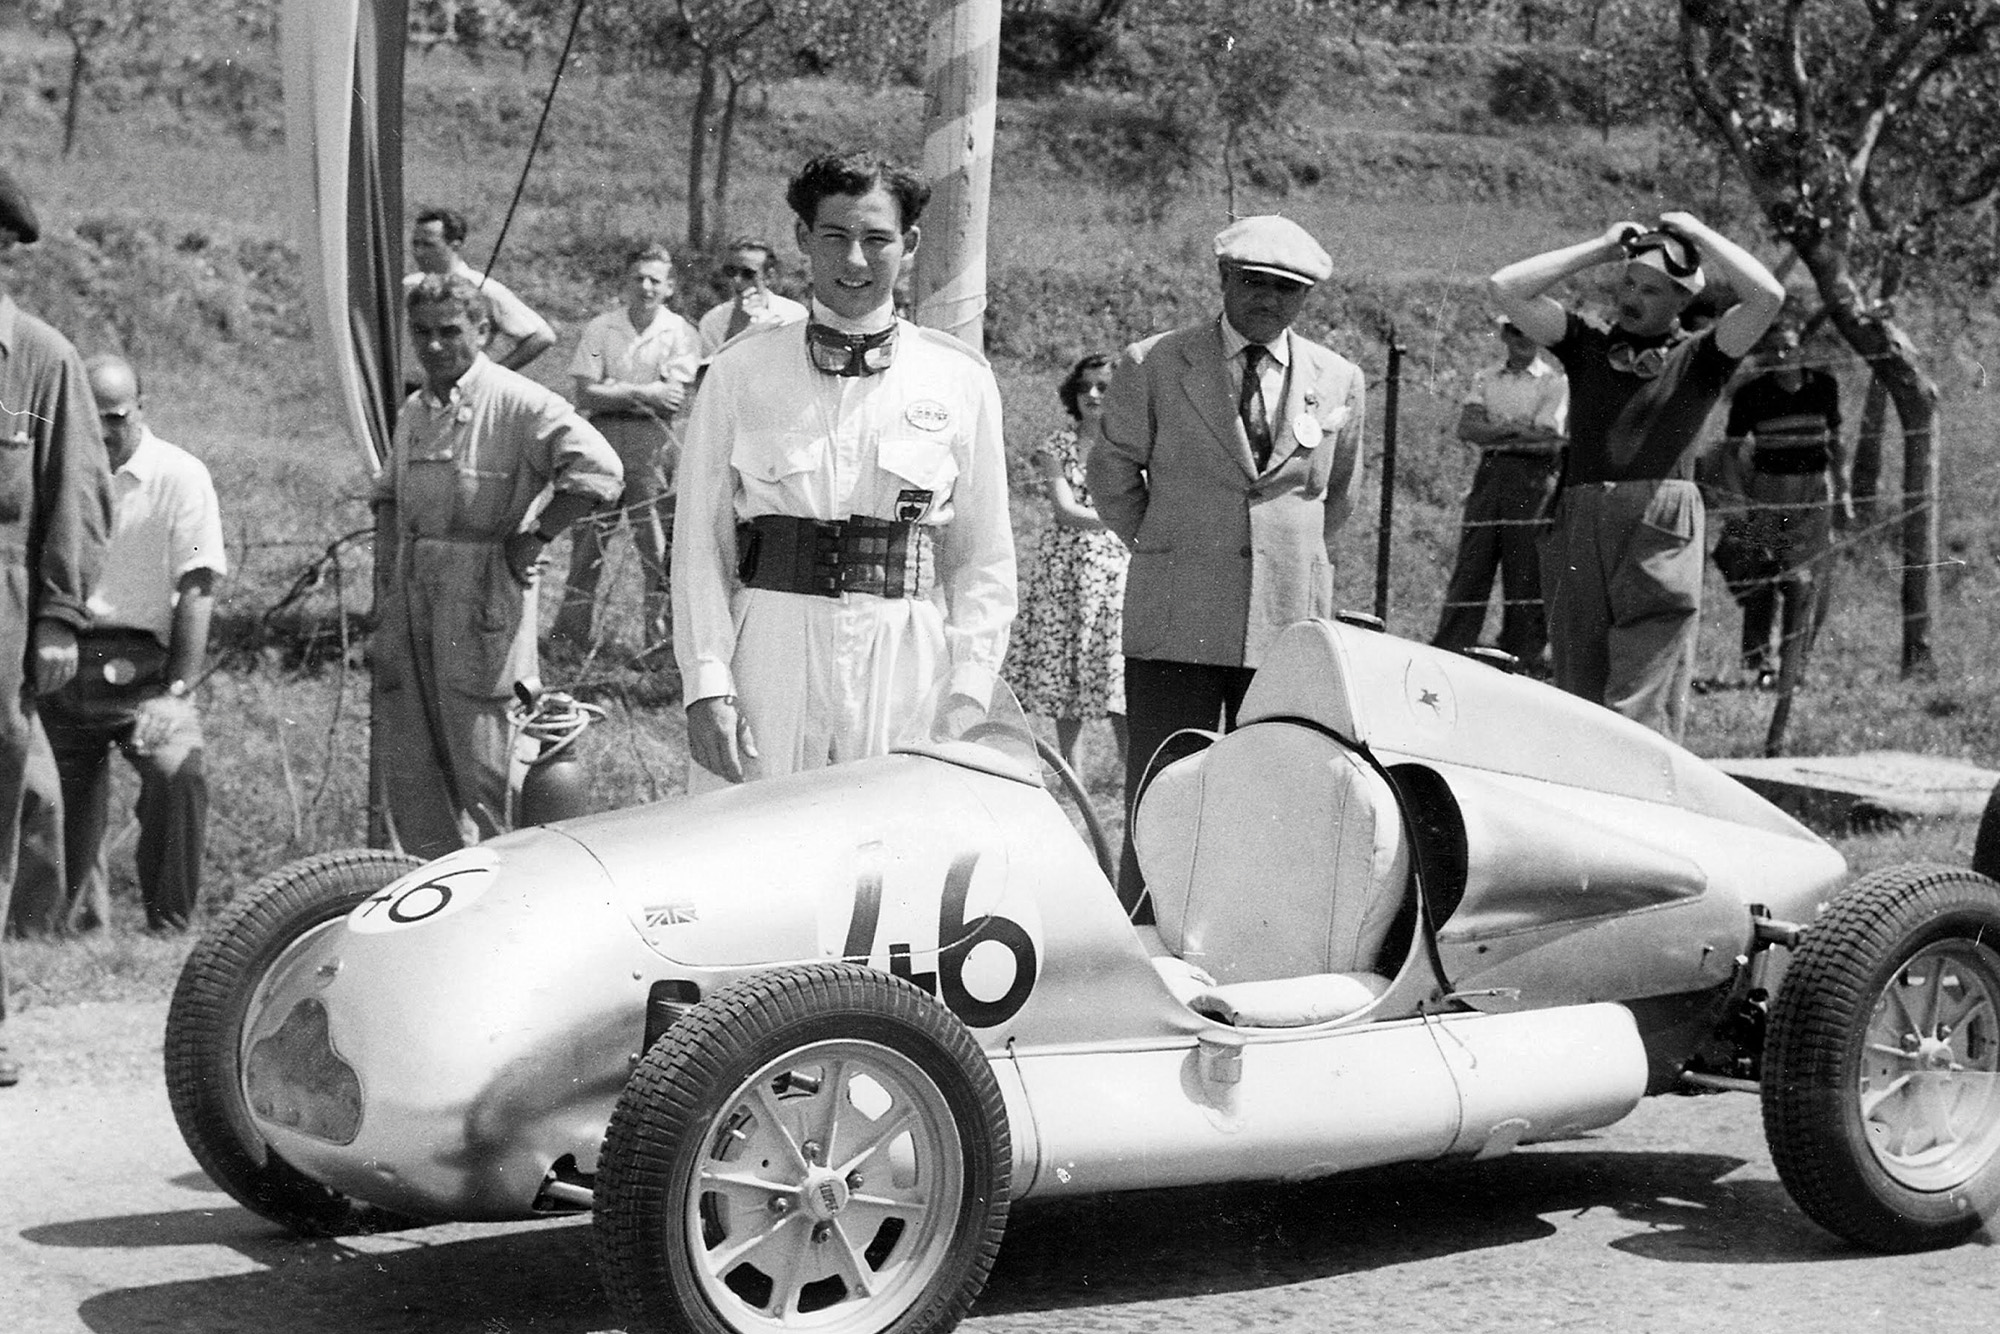 Stirling Moss with his Cooper at the Circuit of Garda in 1949